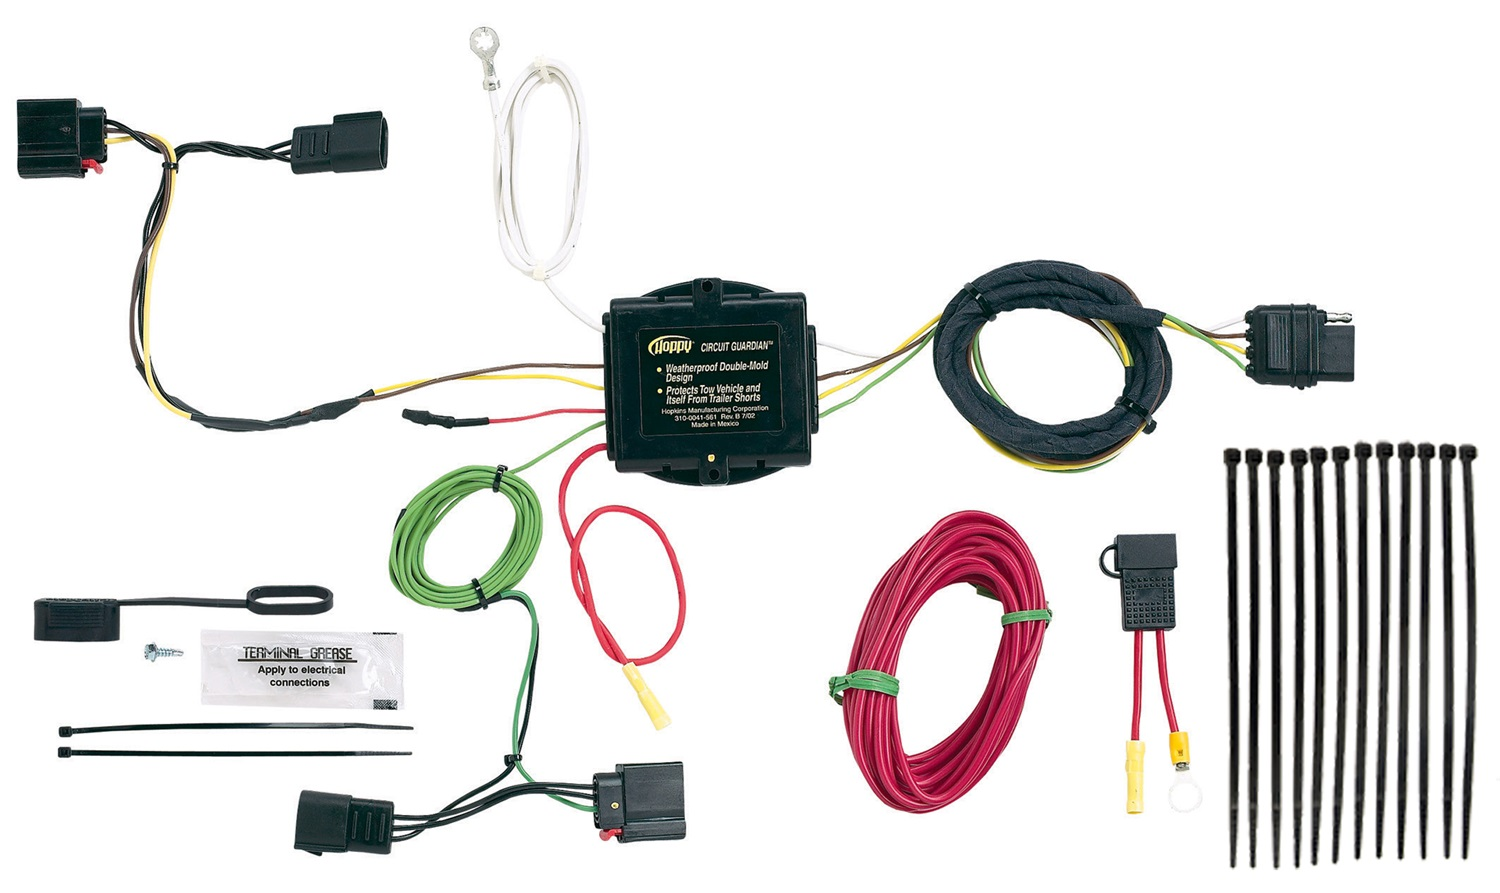 hopkins towing solution 11142175 trailer wire harness walmart comhopkins wiring harness 9 [ 1500 x 893 Pixel ]